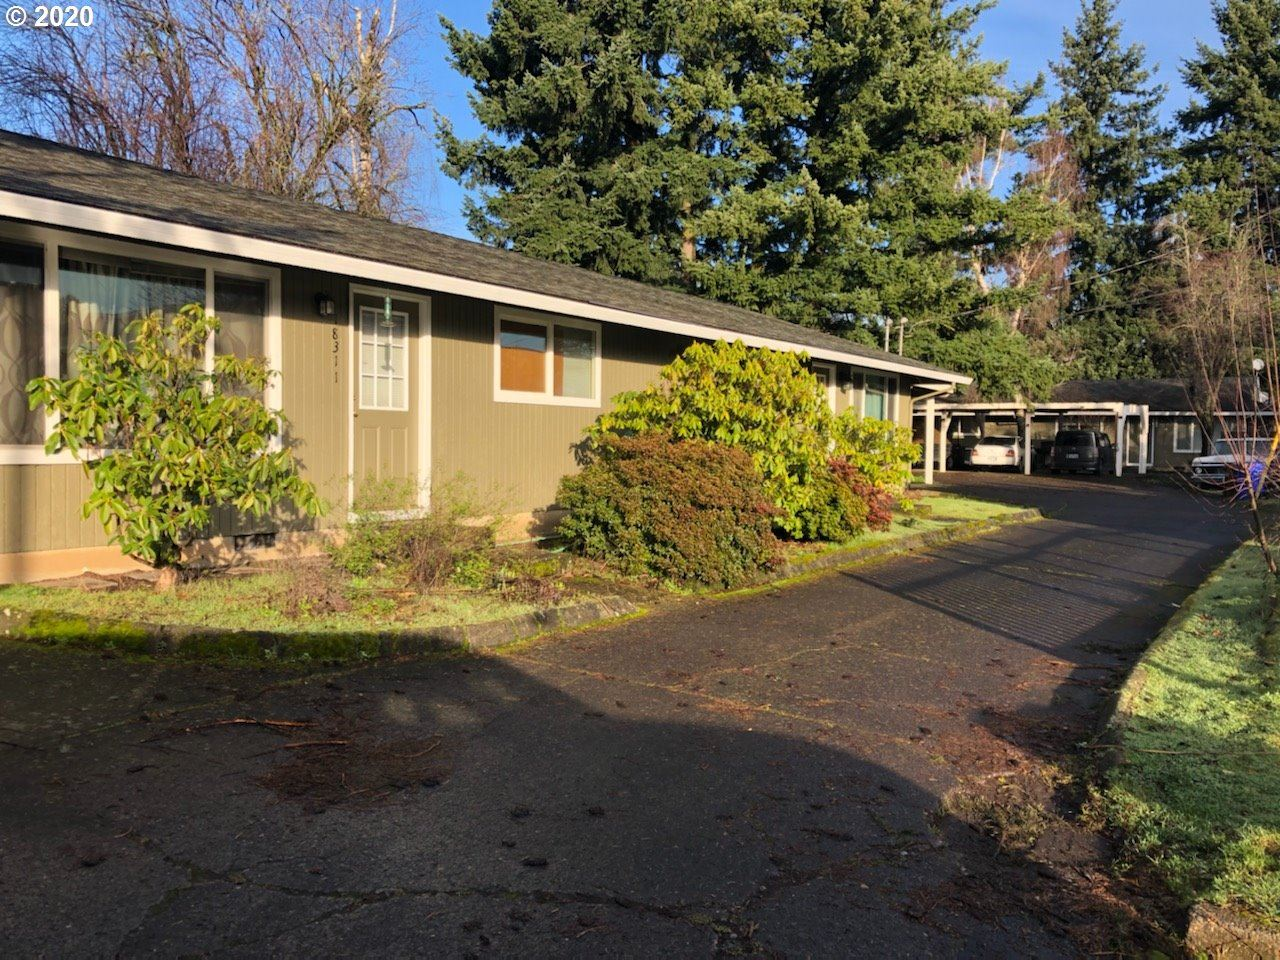 18311 SE CARUTHERS ST, Portland, OR 97233 - MLS#: 20308550